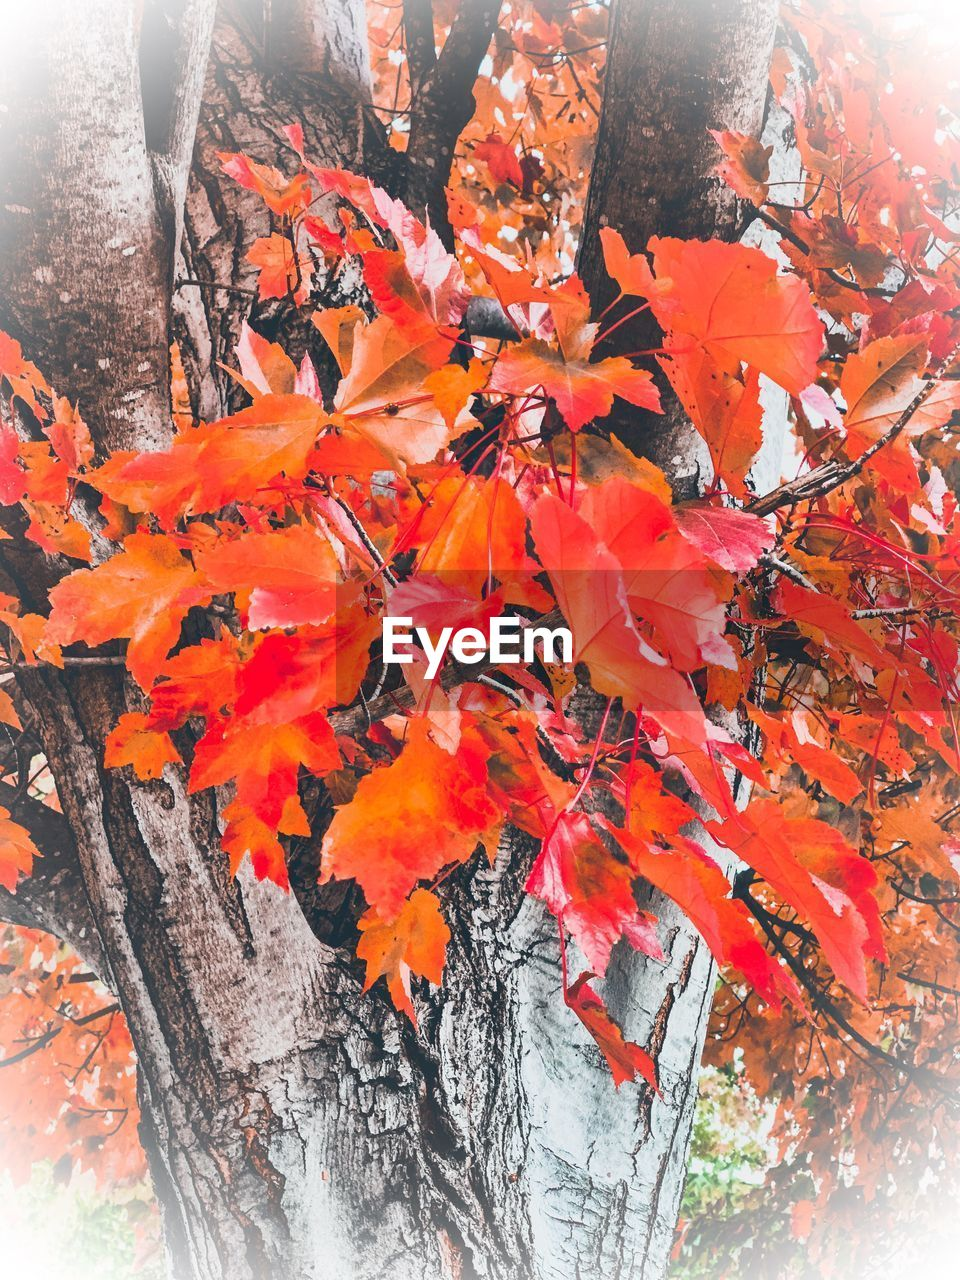 orange color, autumn, beauty in nature, nature, plant part, change, plant, close-up, day, no people, tree, leaf, outdoors, growth, branch, maple leaf, maple tree, tree trunk, trunk, leaves, natural condition, orange